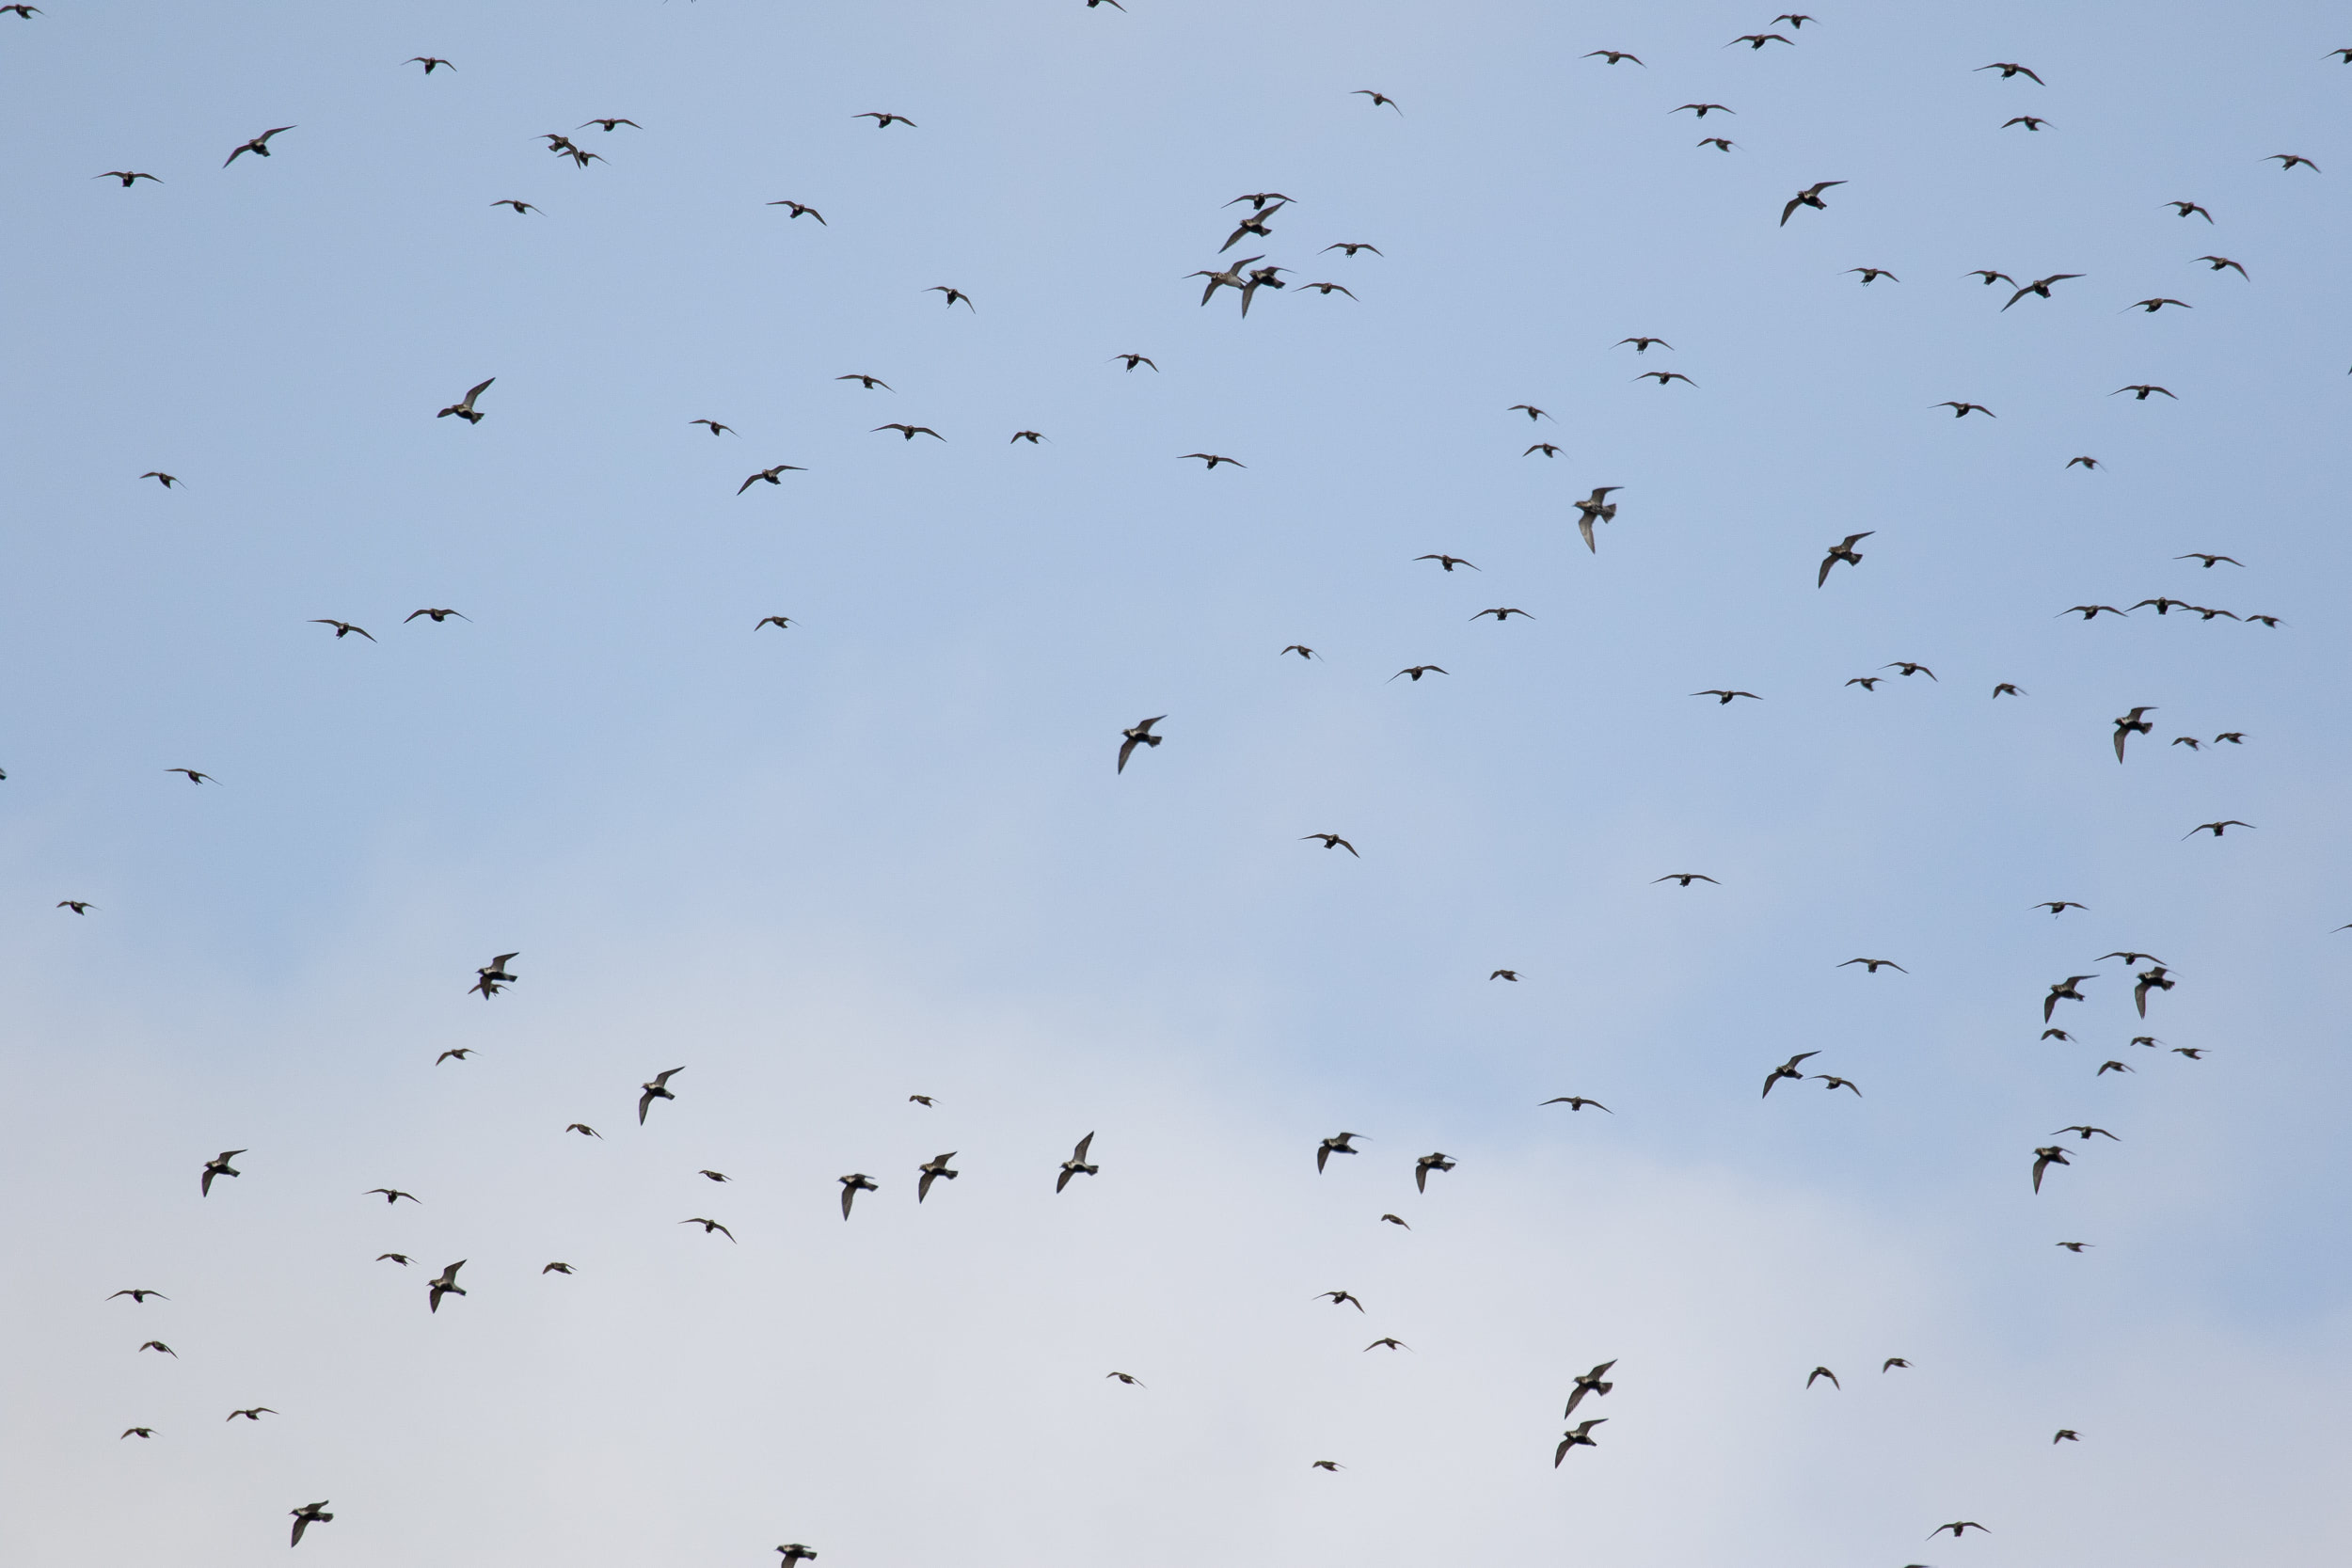 Golden Plovers hanging/soaring in the strong wind.